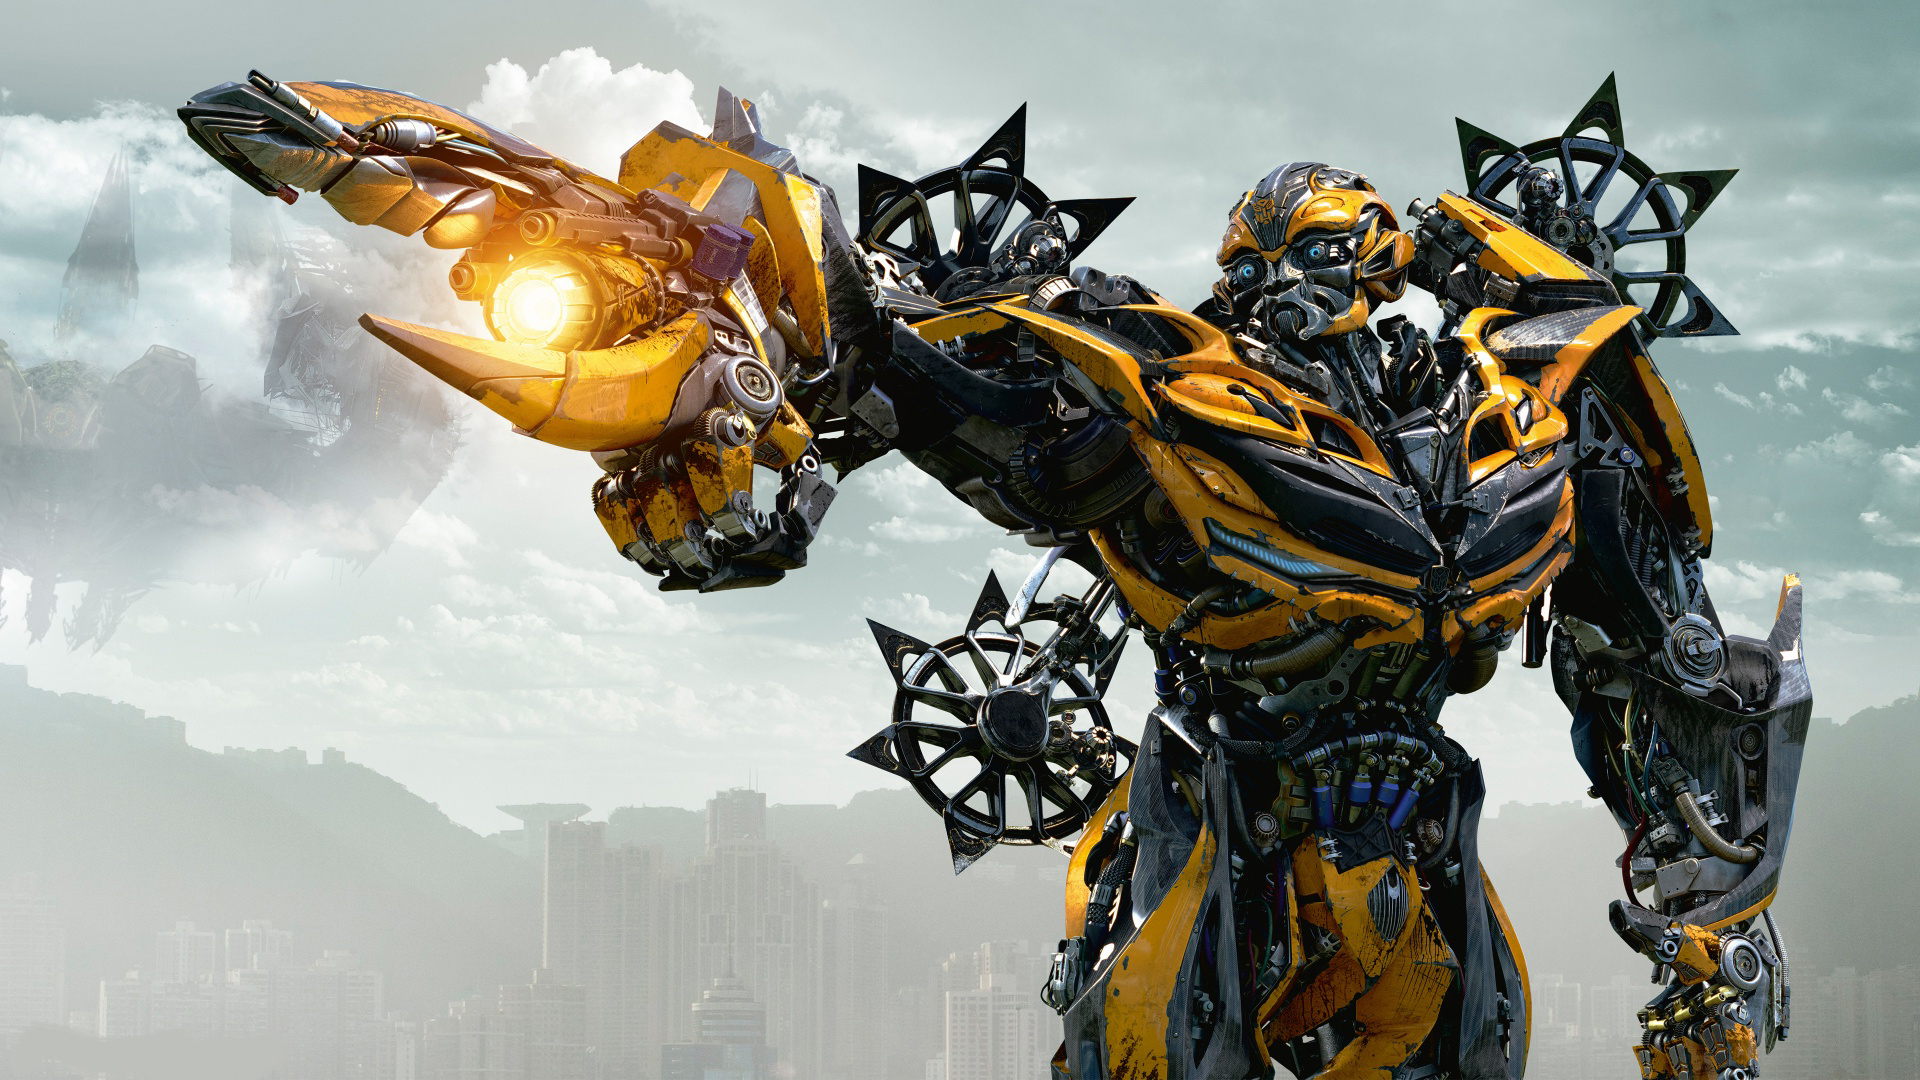 Paramount Has The Most Brilliant Idea Ever: A Transformers Cinematic Universe!